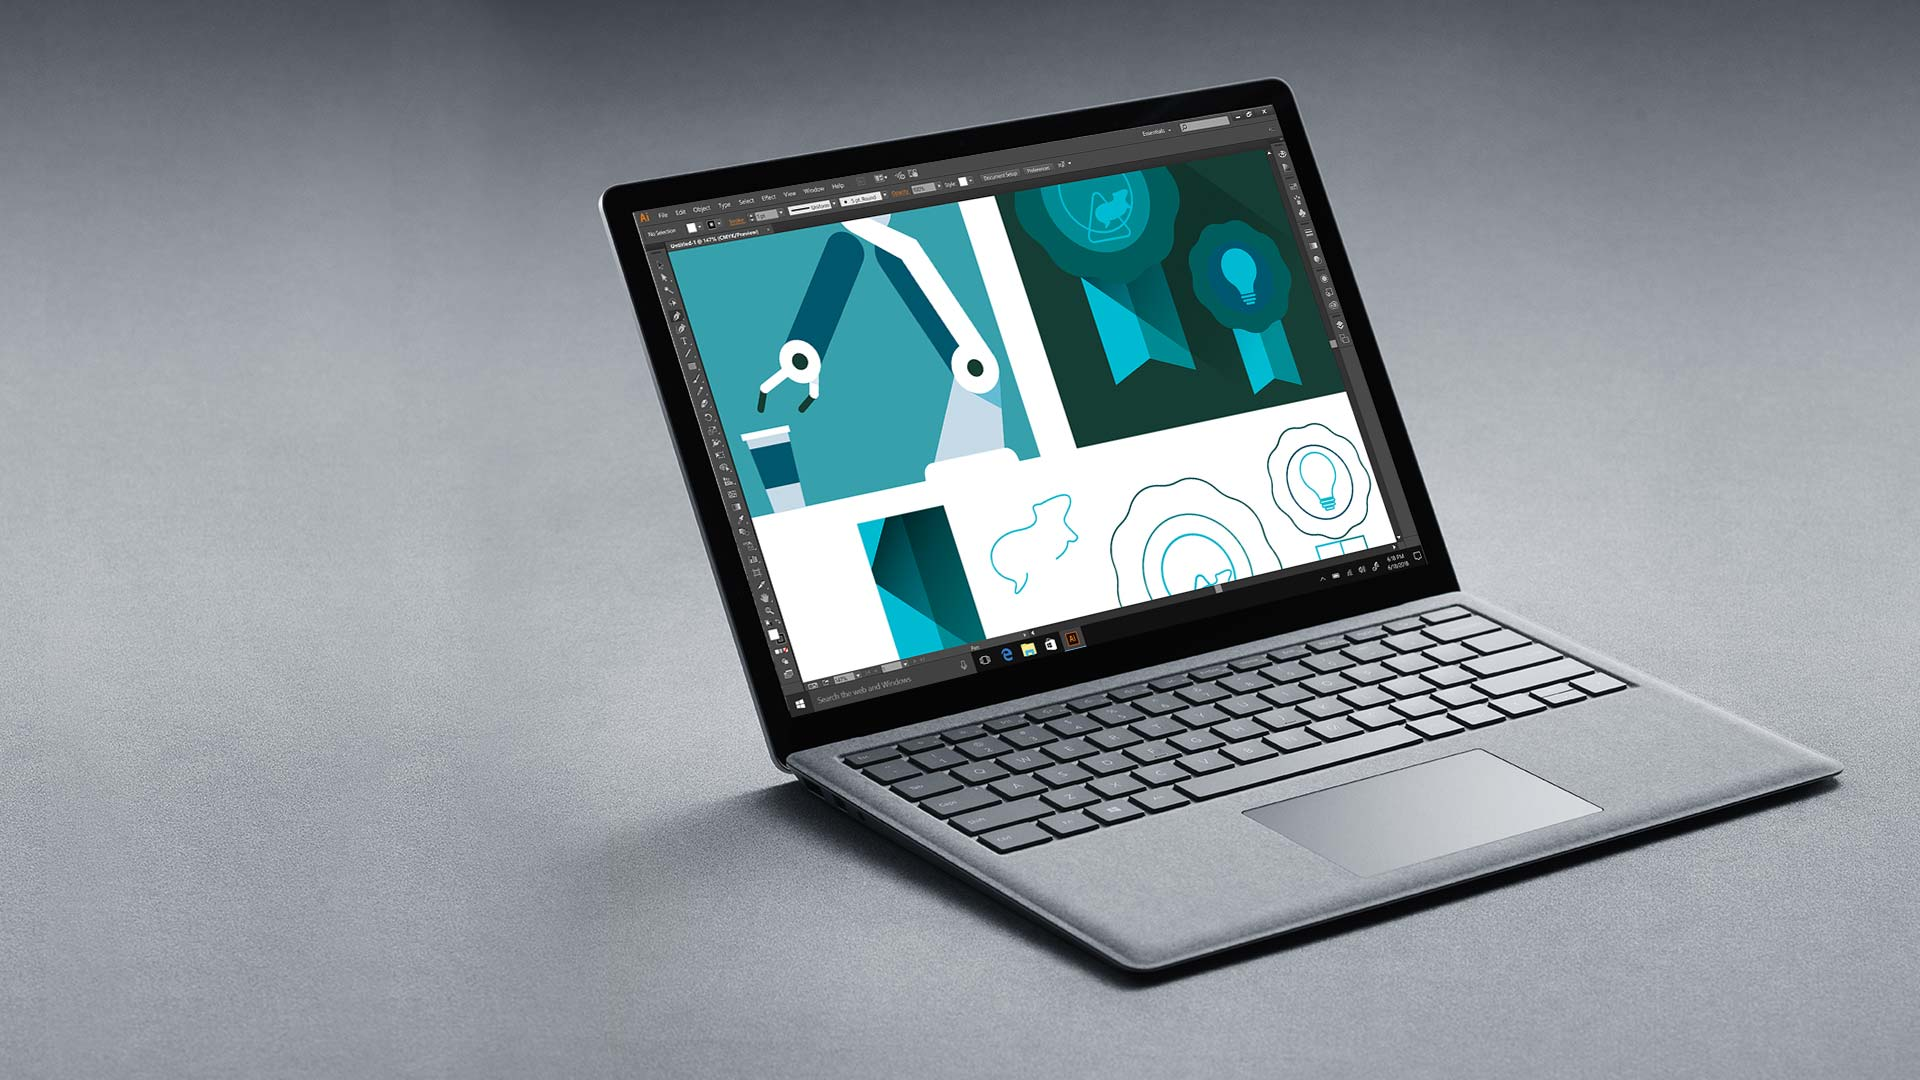 Surface Laptop Platina com ecrã do Adobe Illustrator.